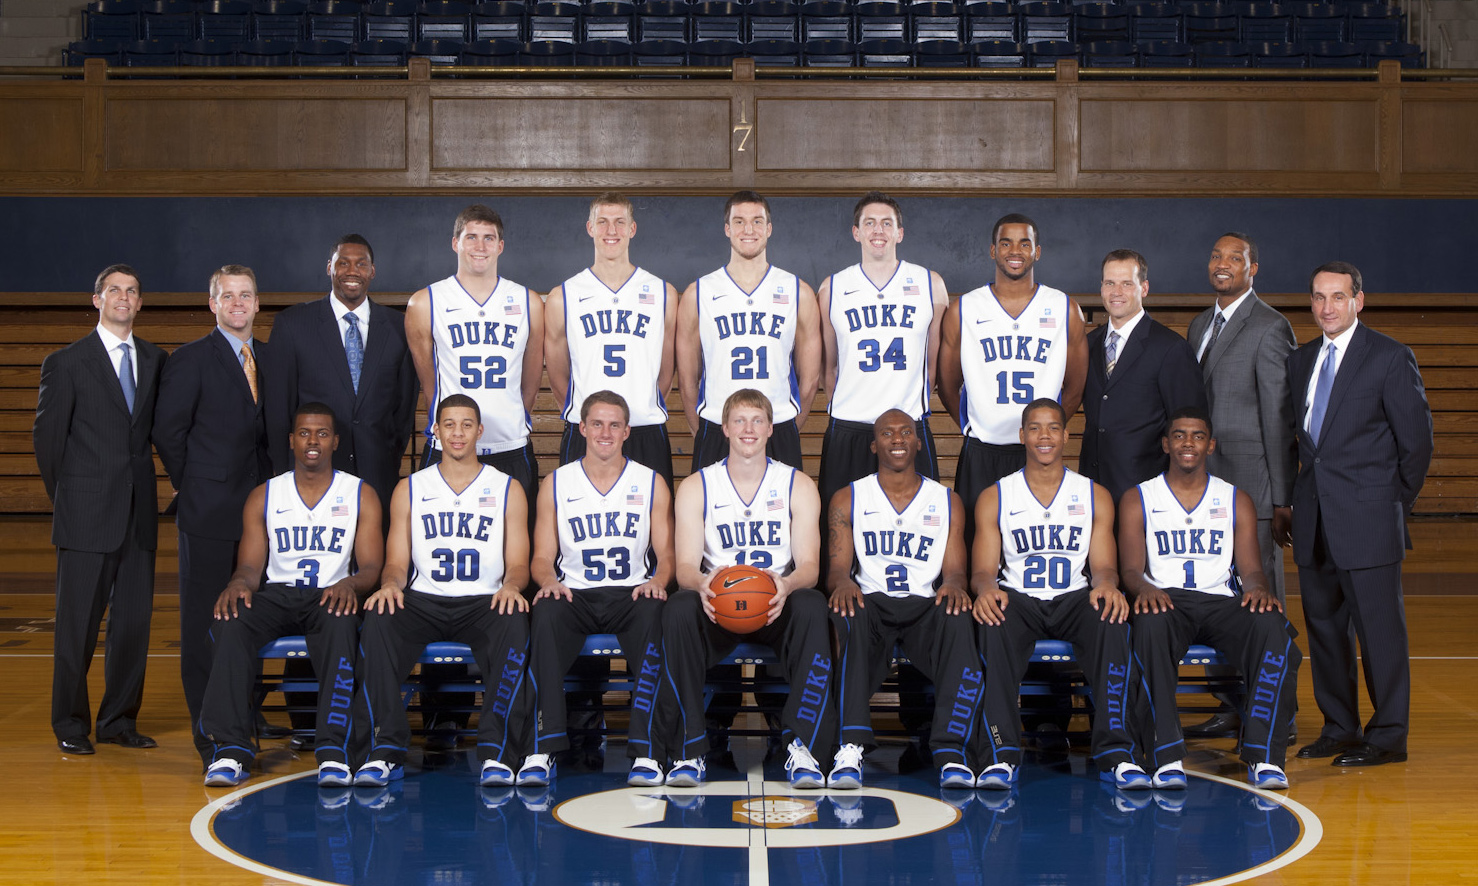 Duke s loaded 2010-11 roster featured three players who would go on to be  taken in the 2011 NBA draft — Kyrie Irving (bottom row 7cb38e243